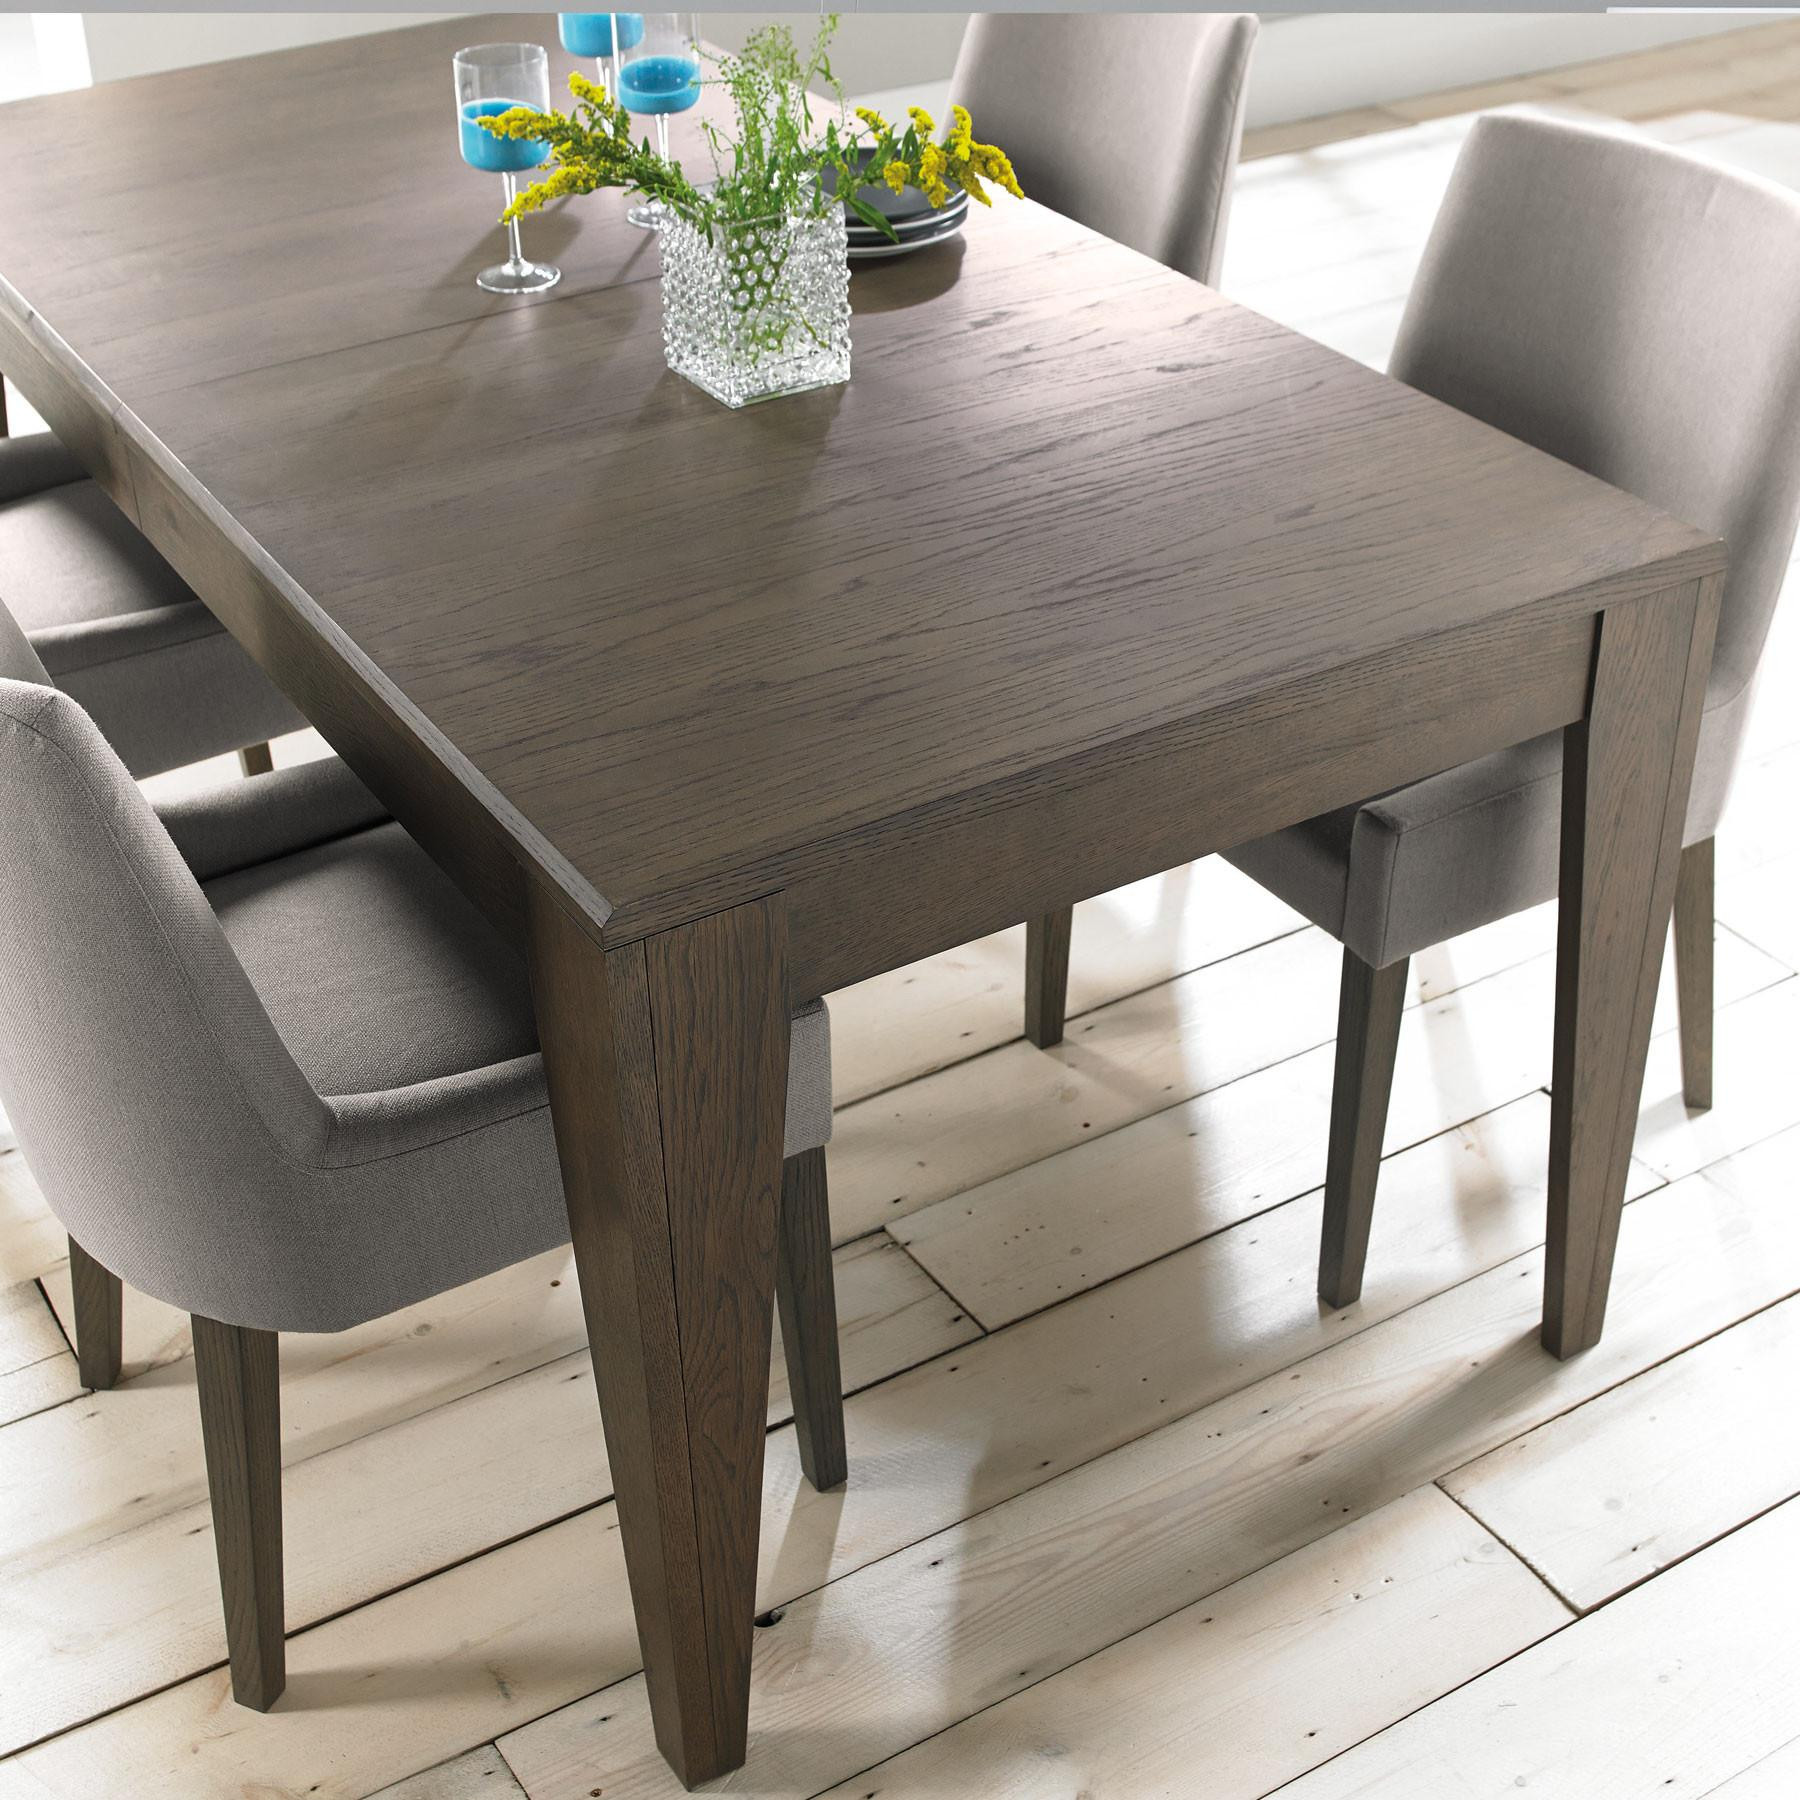 Best ideas about Gray Dining Table . Save or Pin Firenze Weathered Oak and Soft Grey 220cm Extending Dining Now.